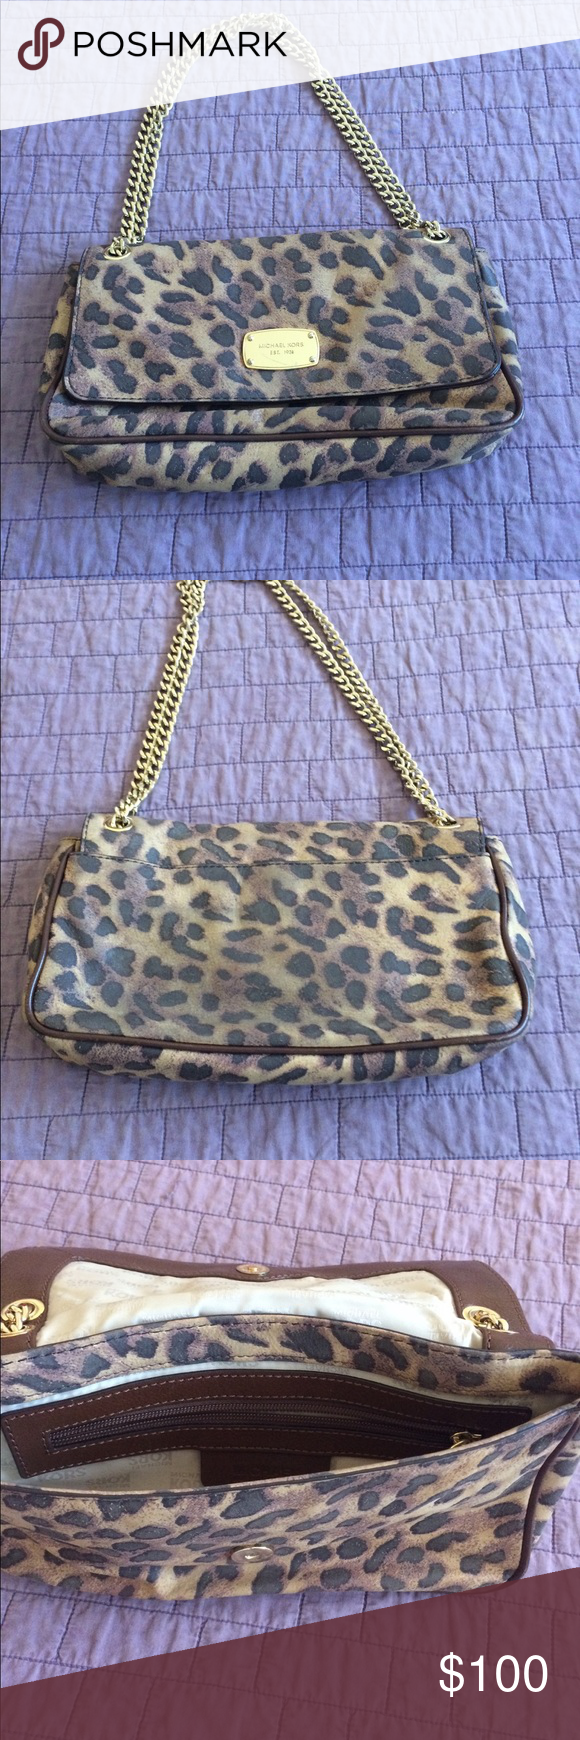 32128c09395a Michael Kors Bag Animal Print Jet Set Chain Small Shoulder Bag 10